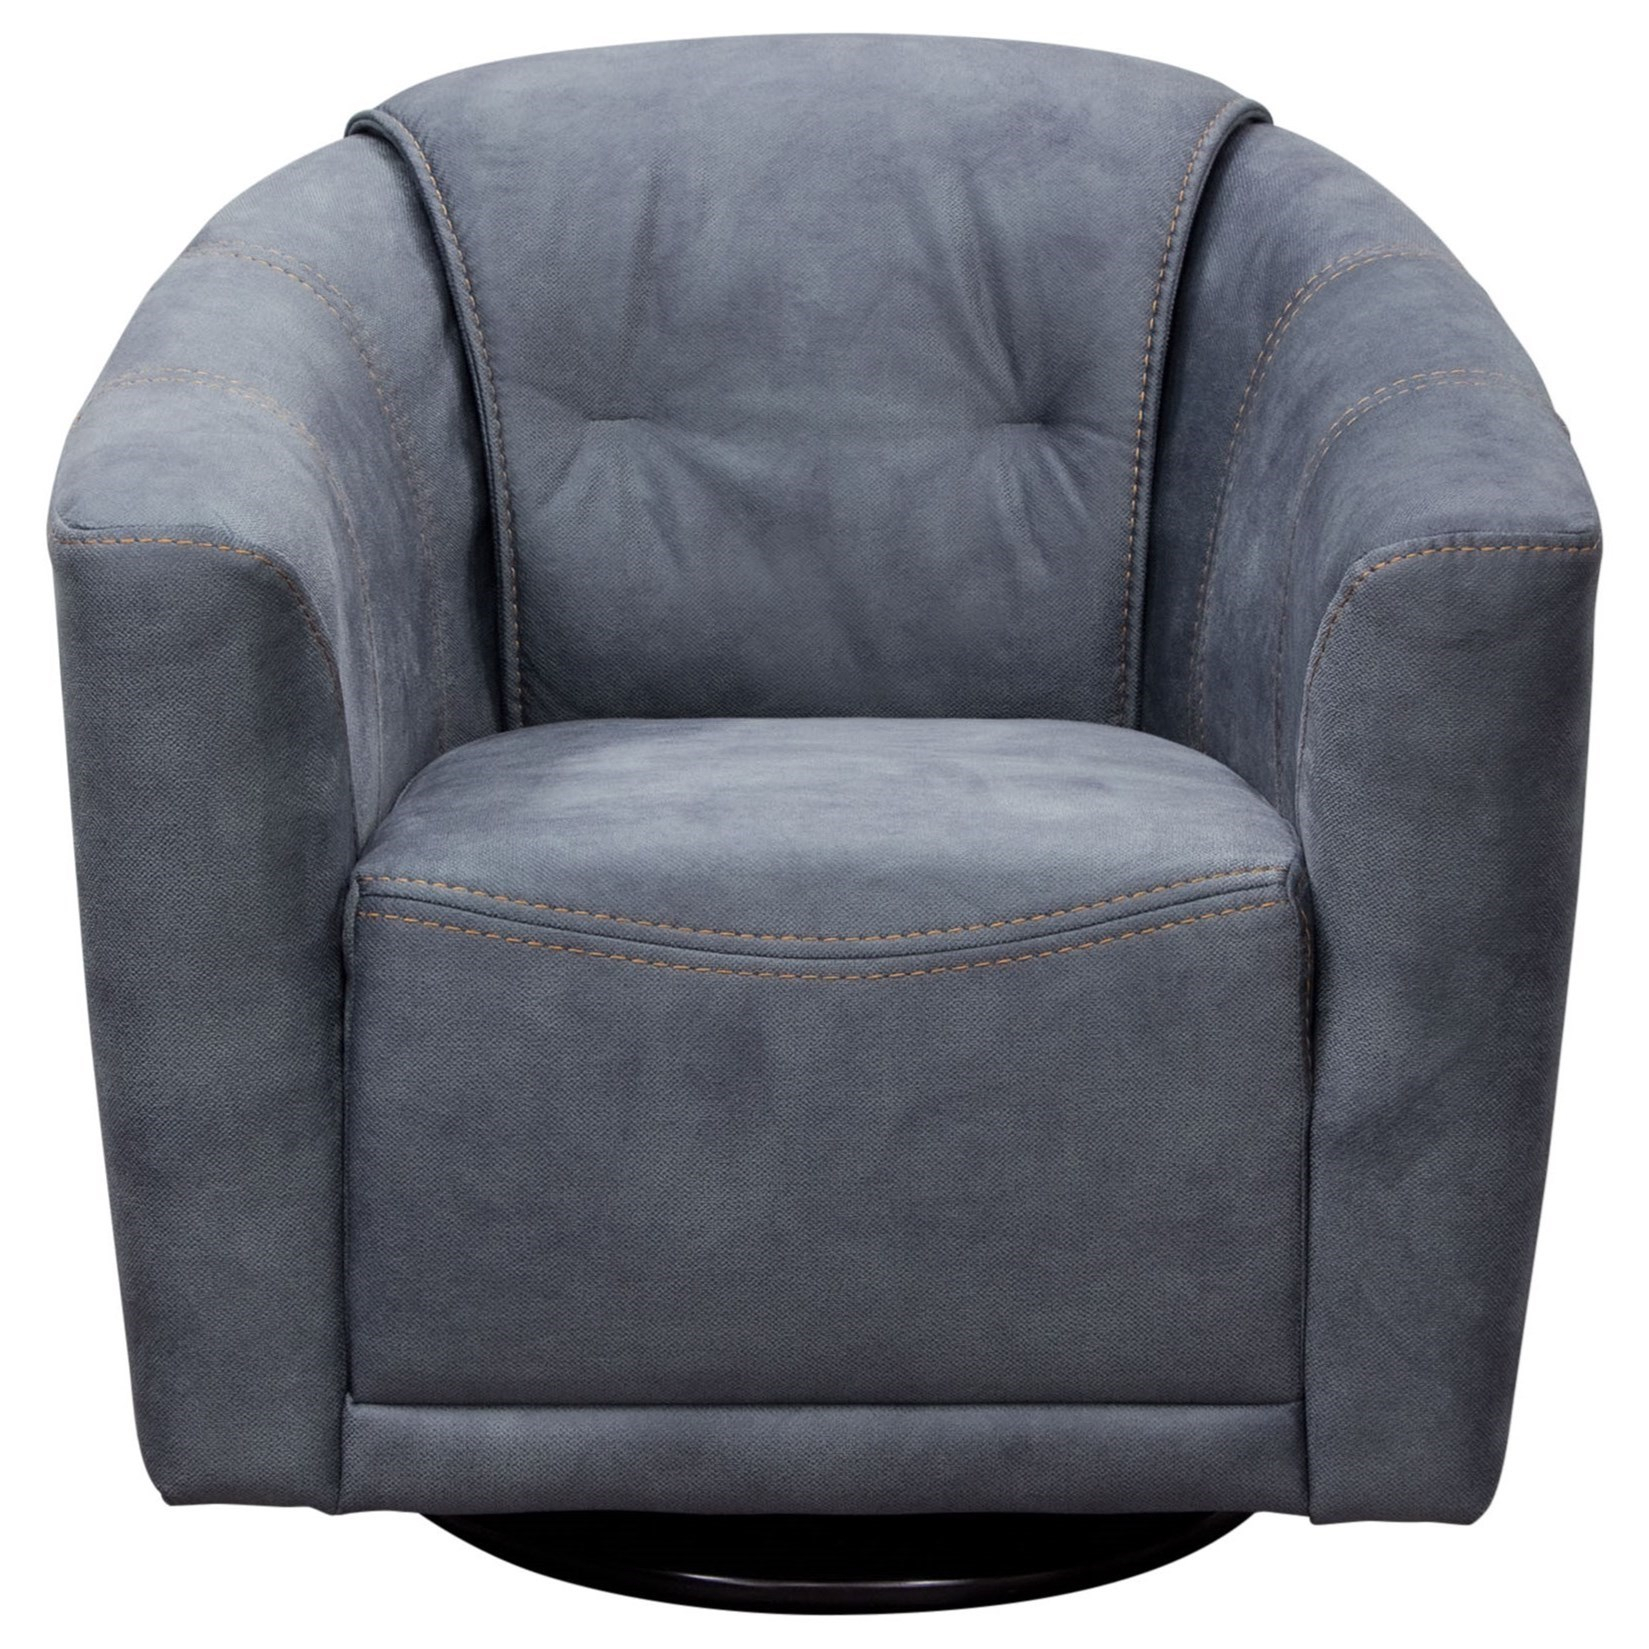 Diamond Sofa Accent Chairs Murphychgr Swivel Accent Chair In Light inside Umber Grey Swivel Accent Chairs